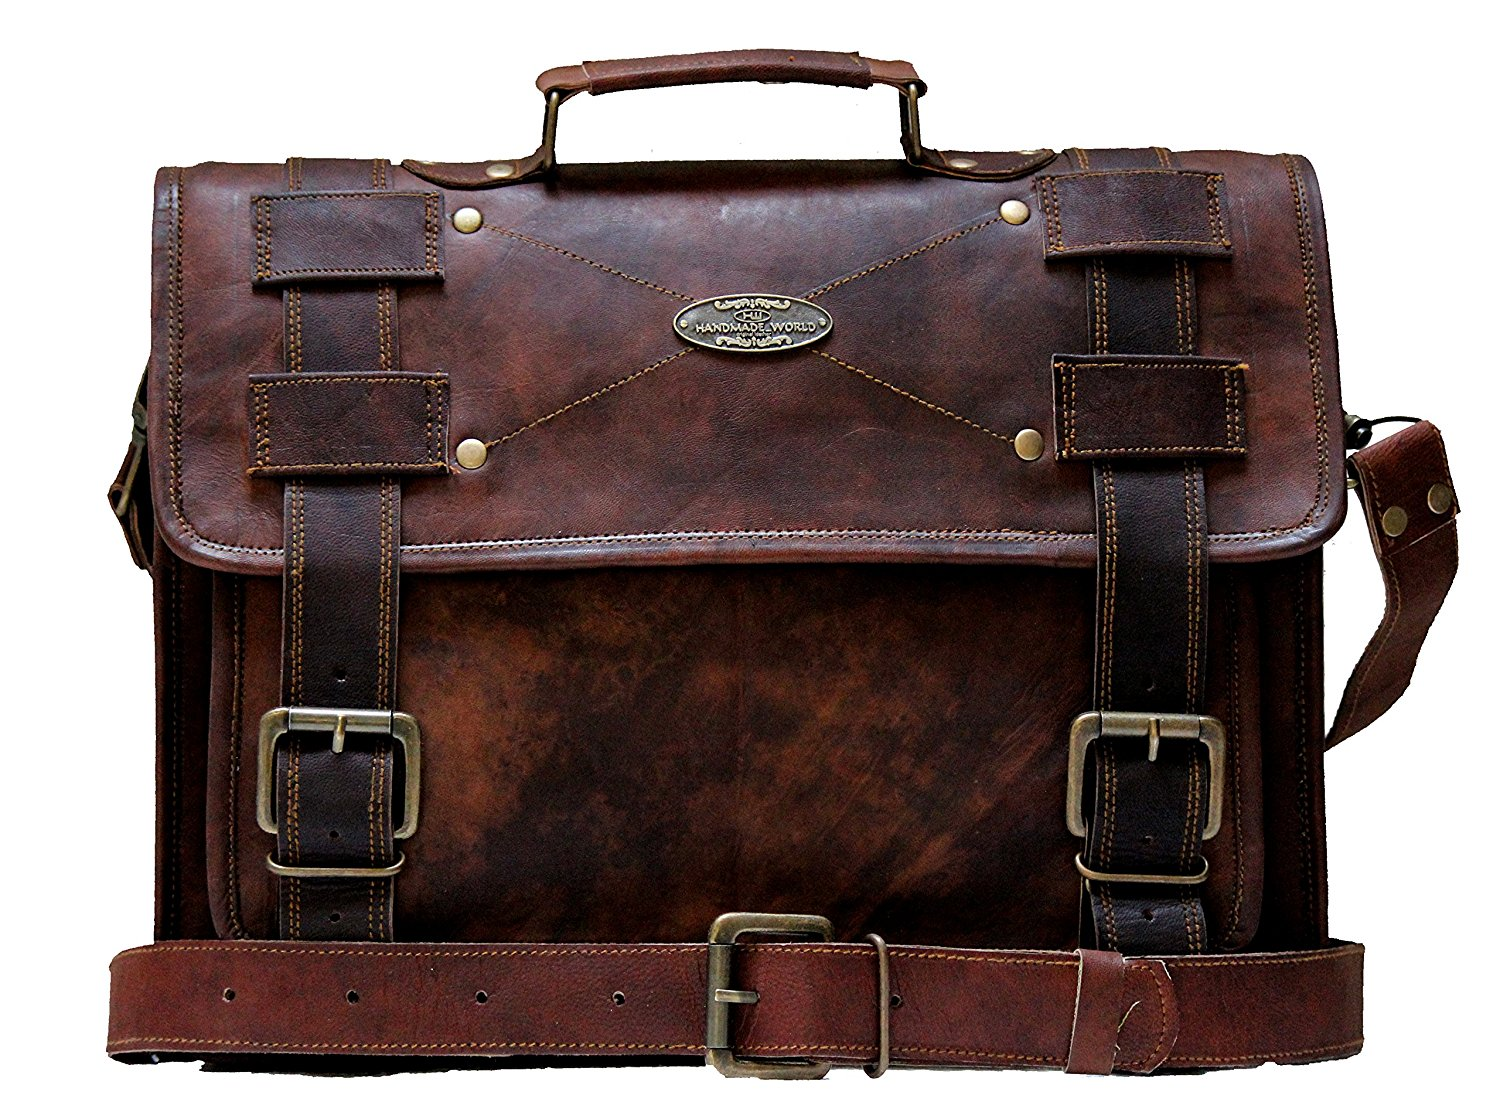 Distressed Brown Leather Briefcase Laptop Computer Satchel Bag 15/16/18 Inch